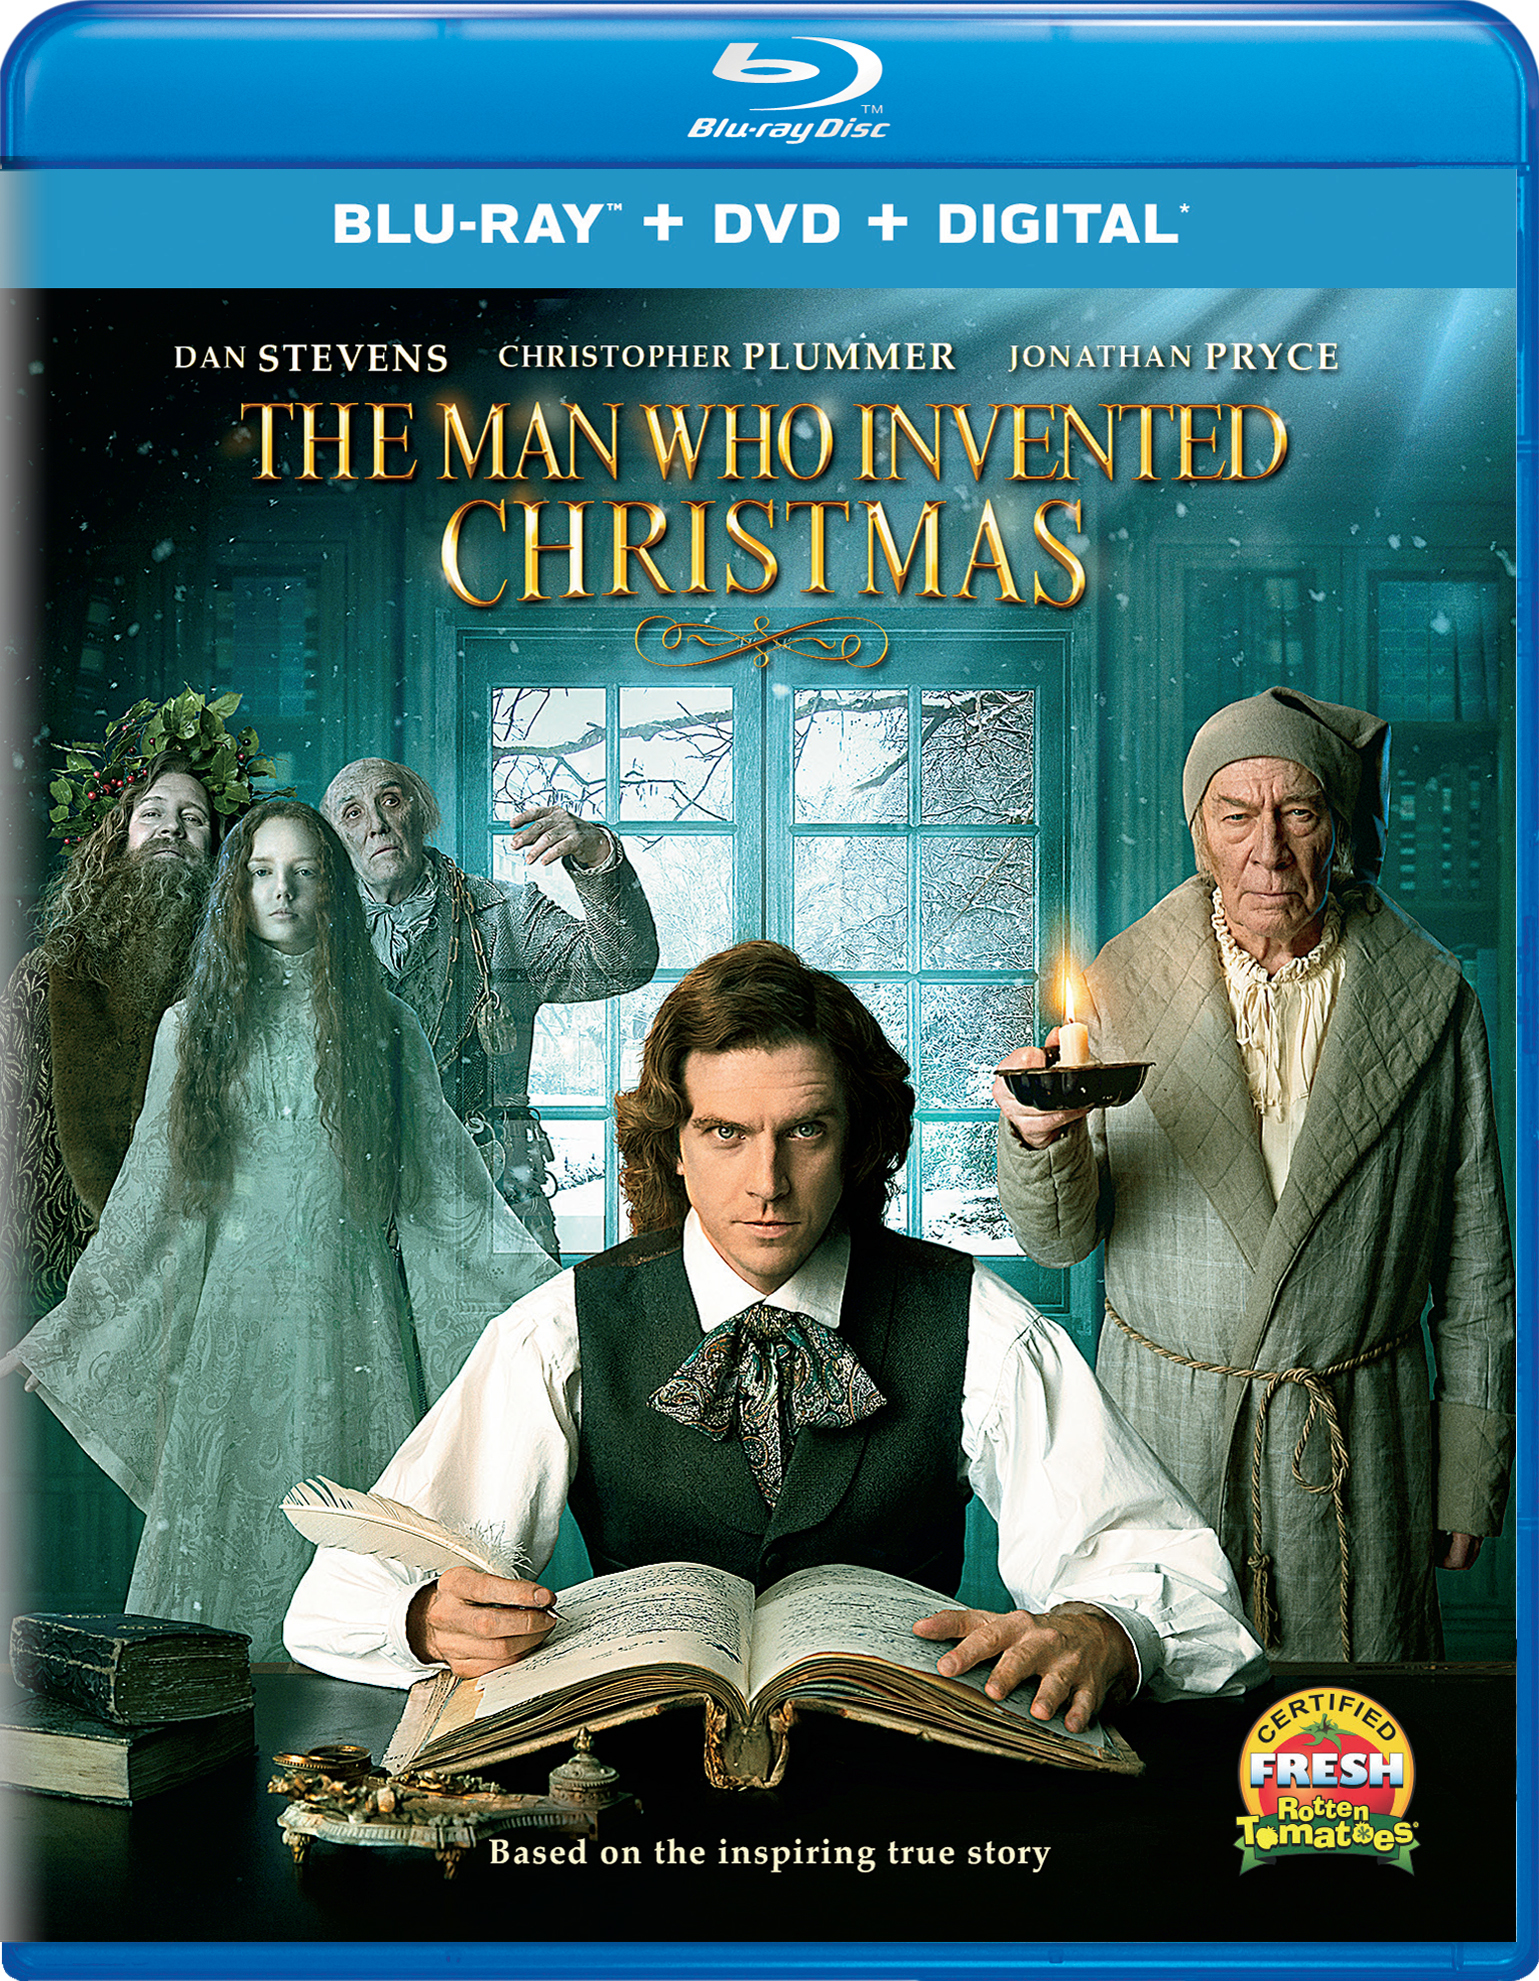 The Man Who Invented Christmas (2017) Blu-ray